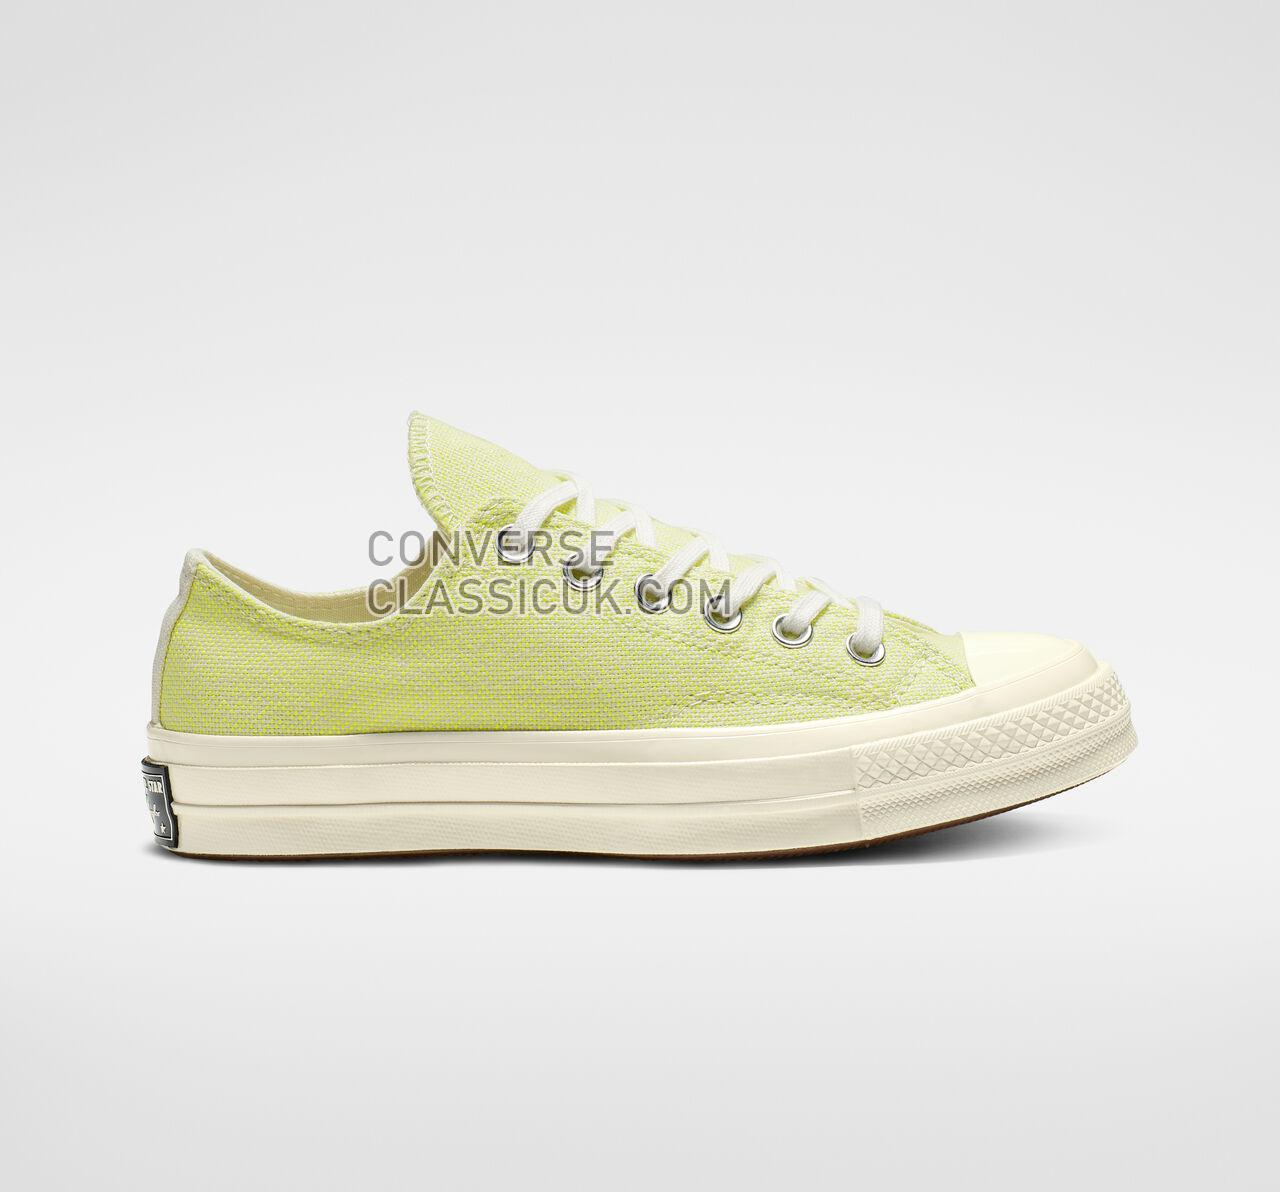 Converse Chuck 70 Carnival Lights Low Top Womens 564131C Egret/Bold Lime/Egret Shoes